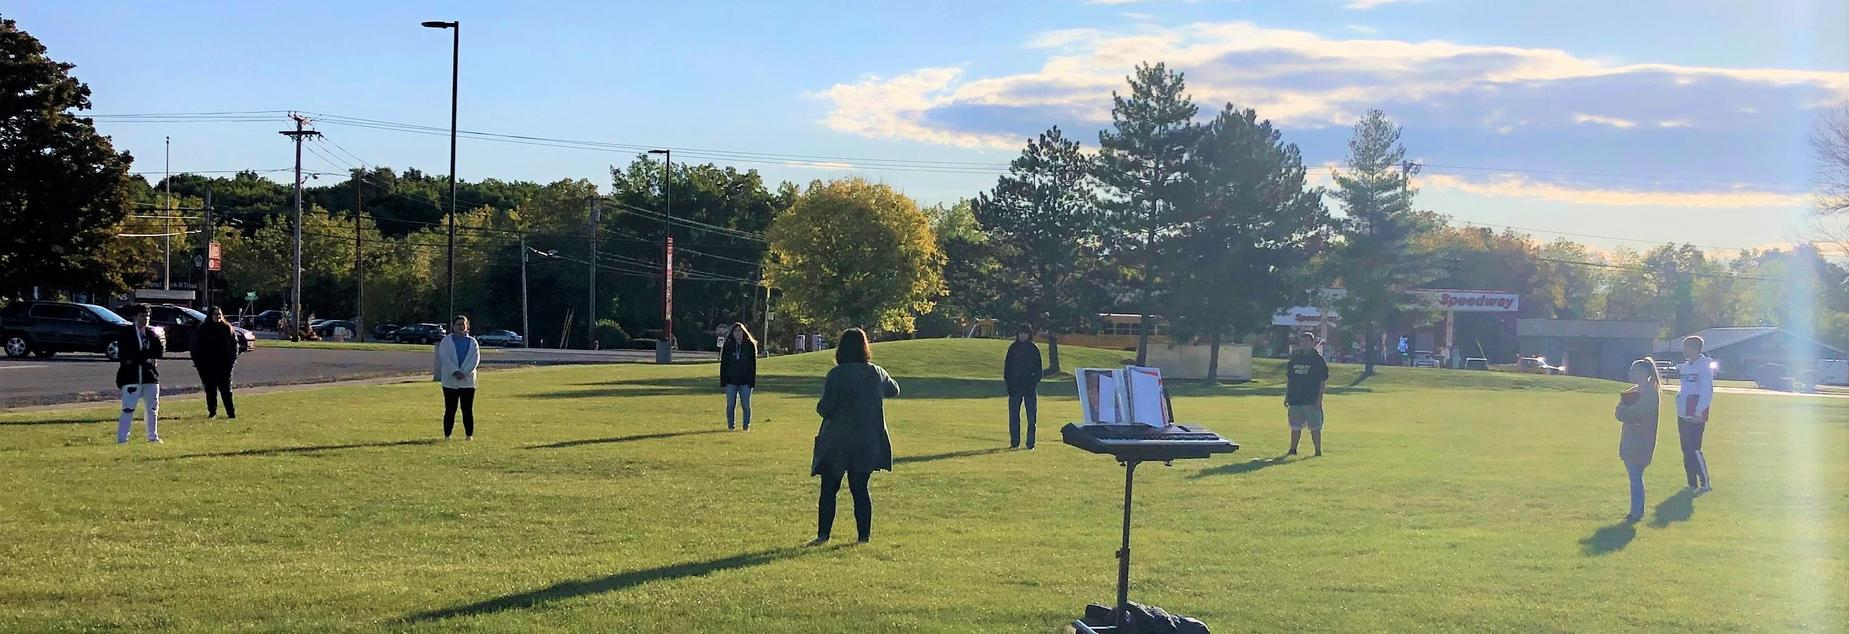 Choir practicing outdoors